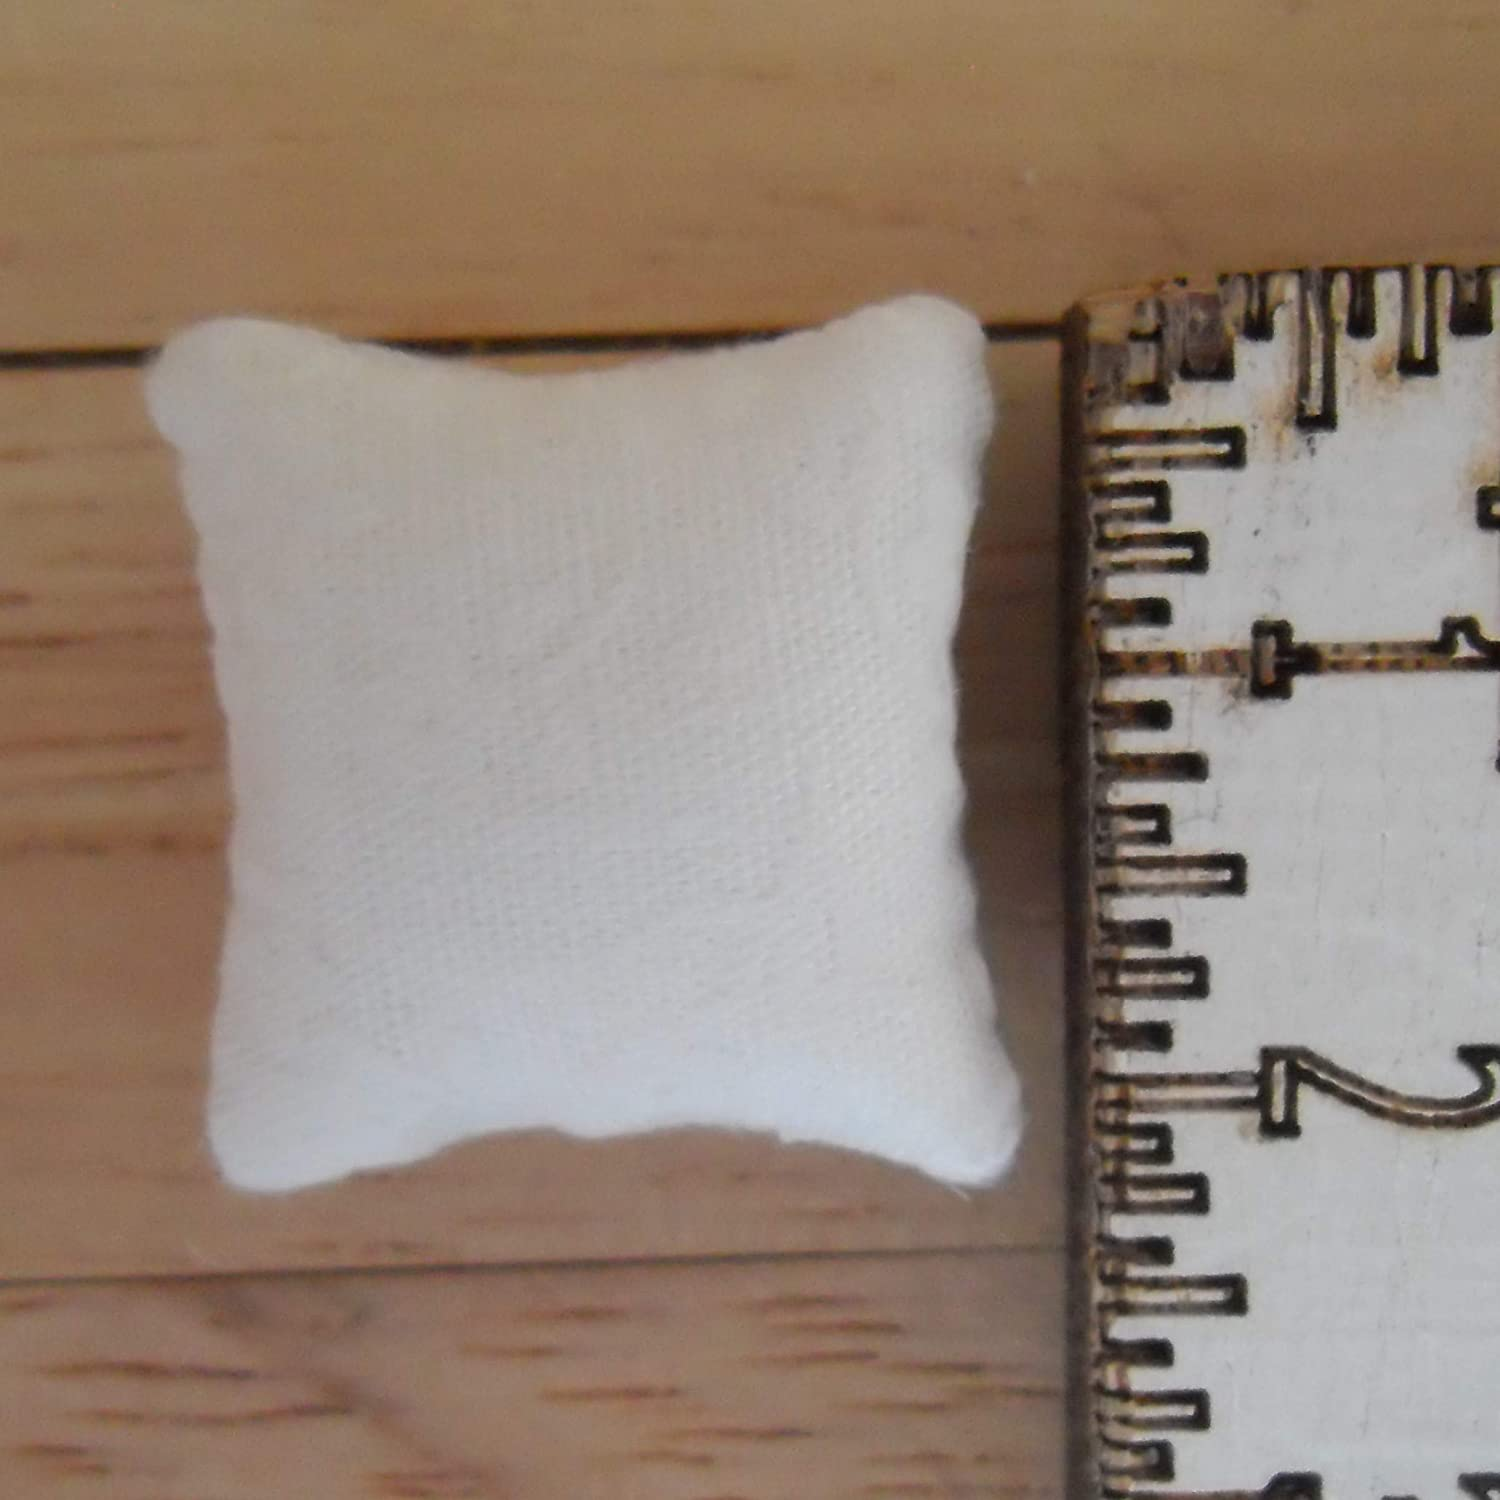 1//24th Scale Dolls House Printed Fabric Cushions Floral Design in White